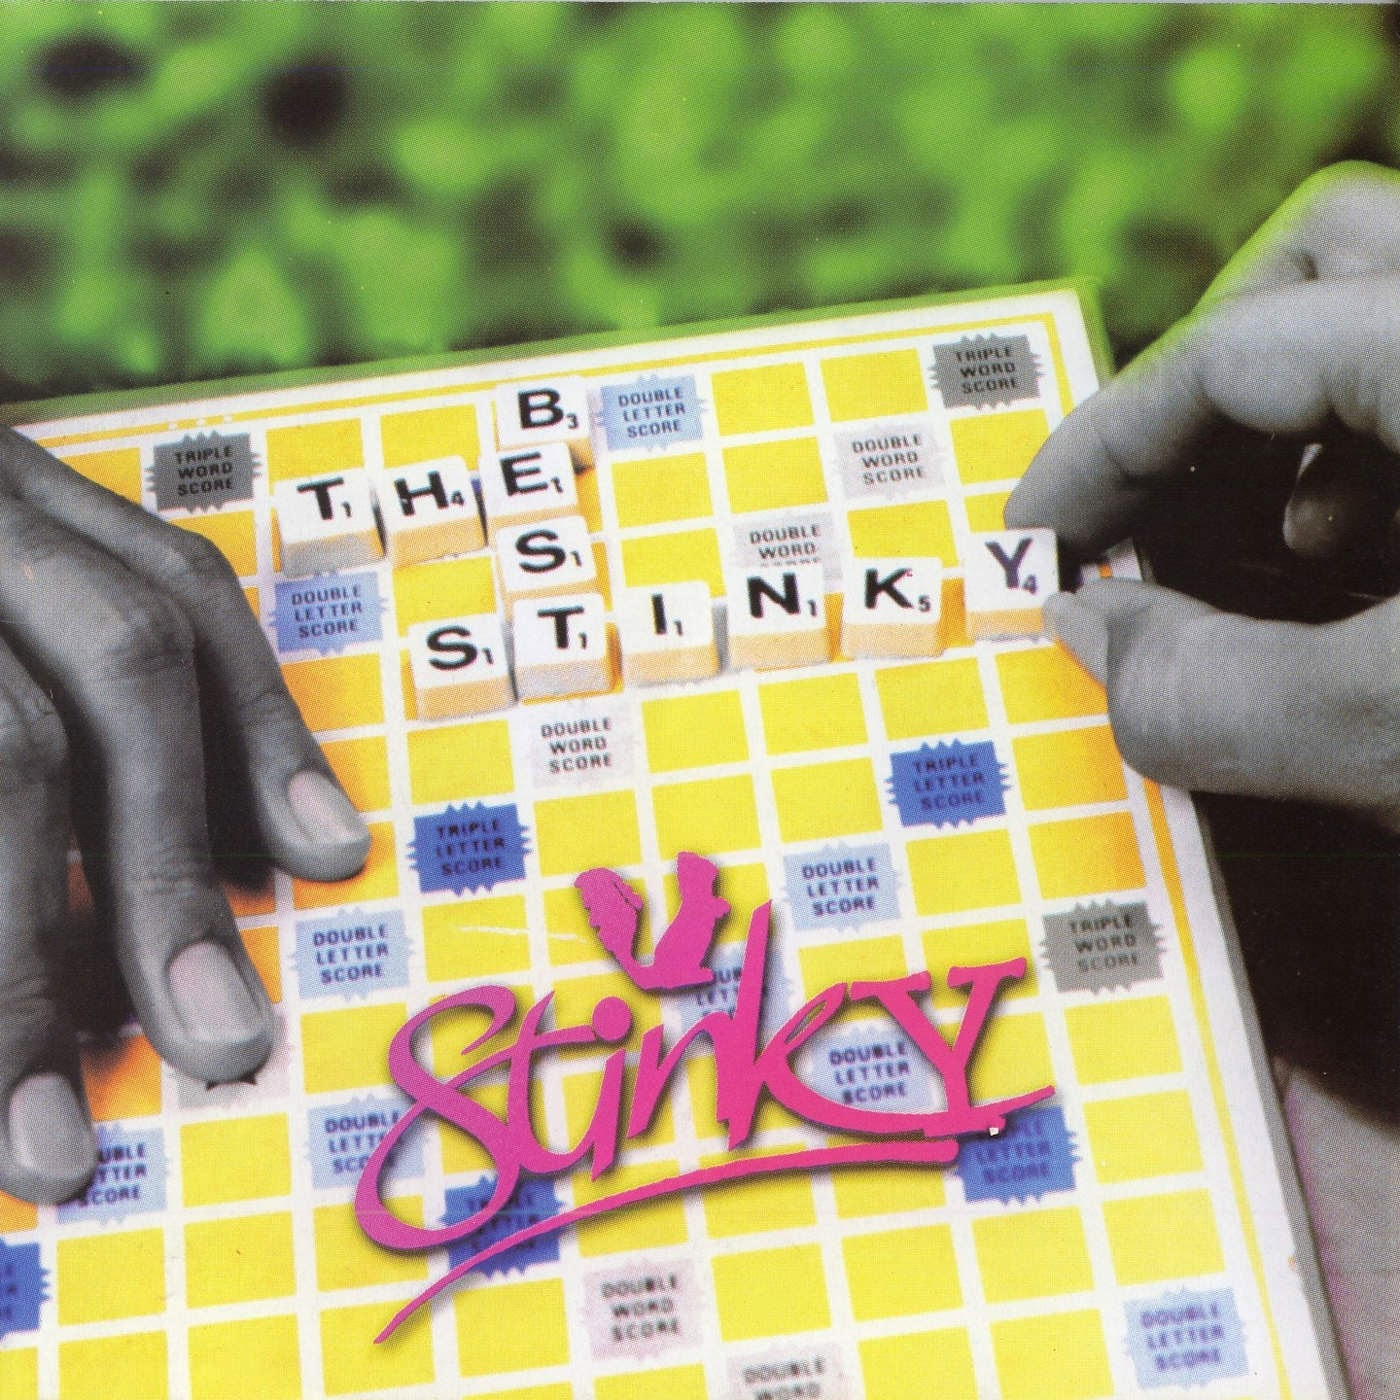 Stinky - Mungkinkah (from The Best of Stinky)